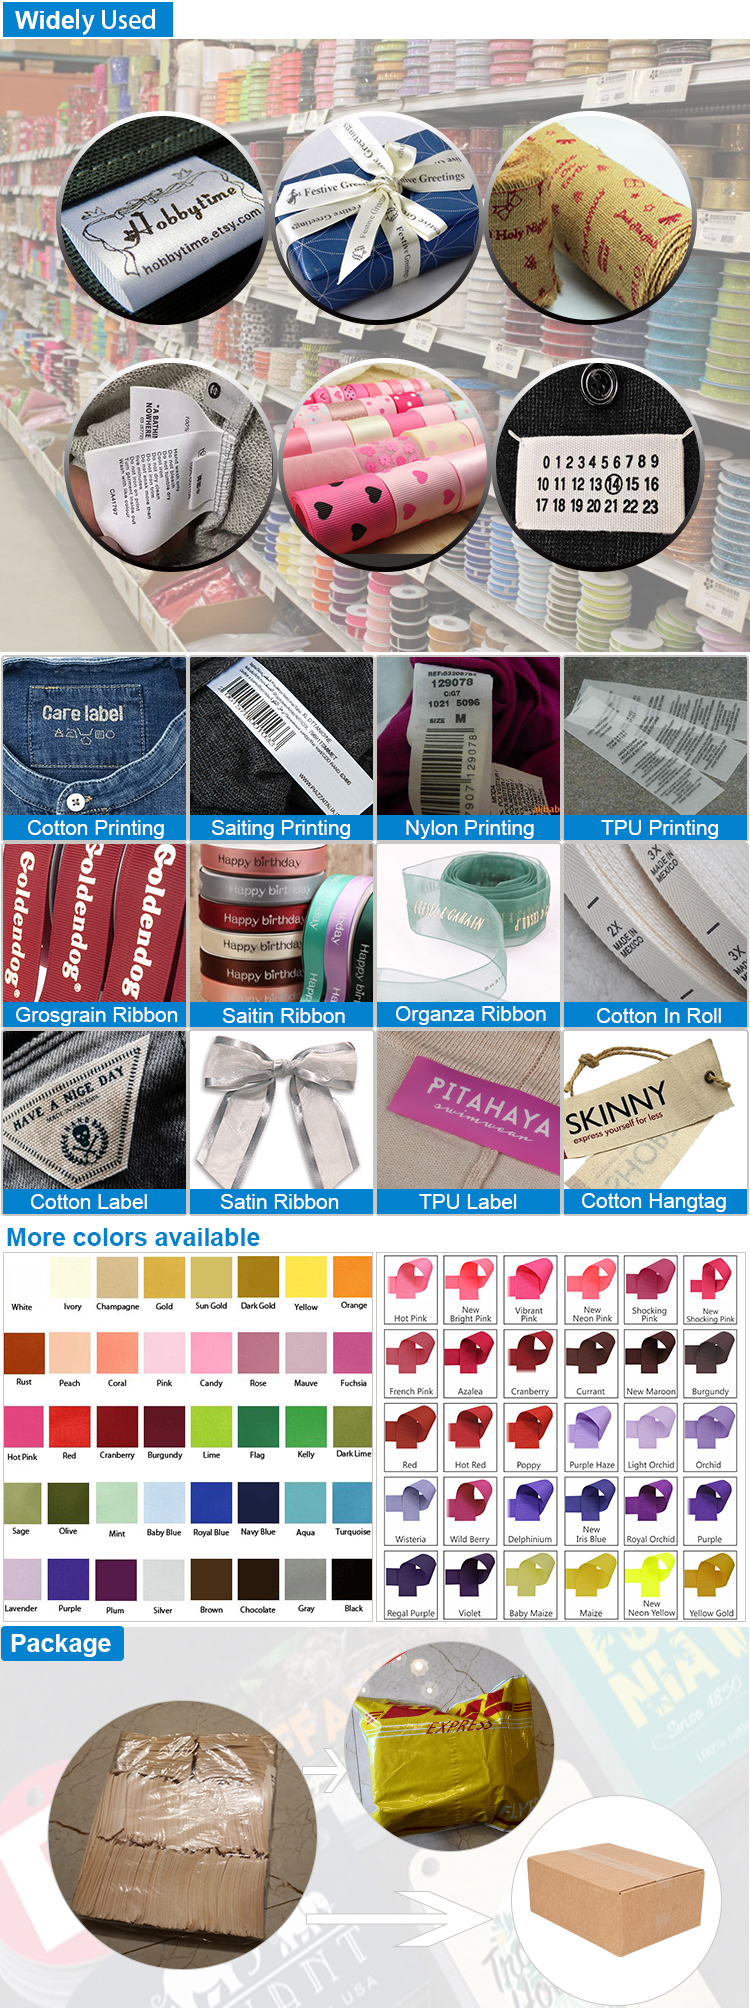 Cheap Price Factory wholesale Sewing on Soft Fabric Baby T Shirt Washing Care Clothing Price Tags Satin Printed Garment Labels